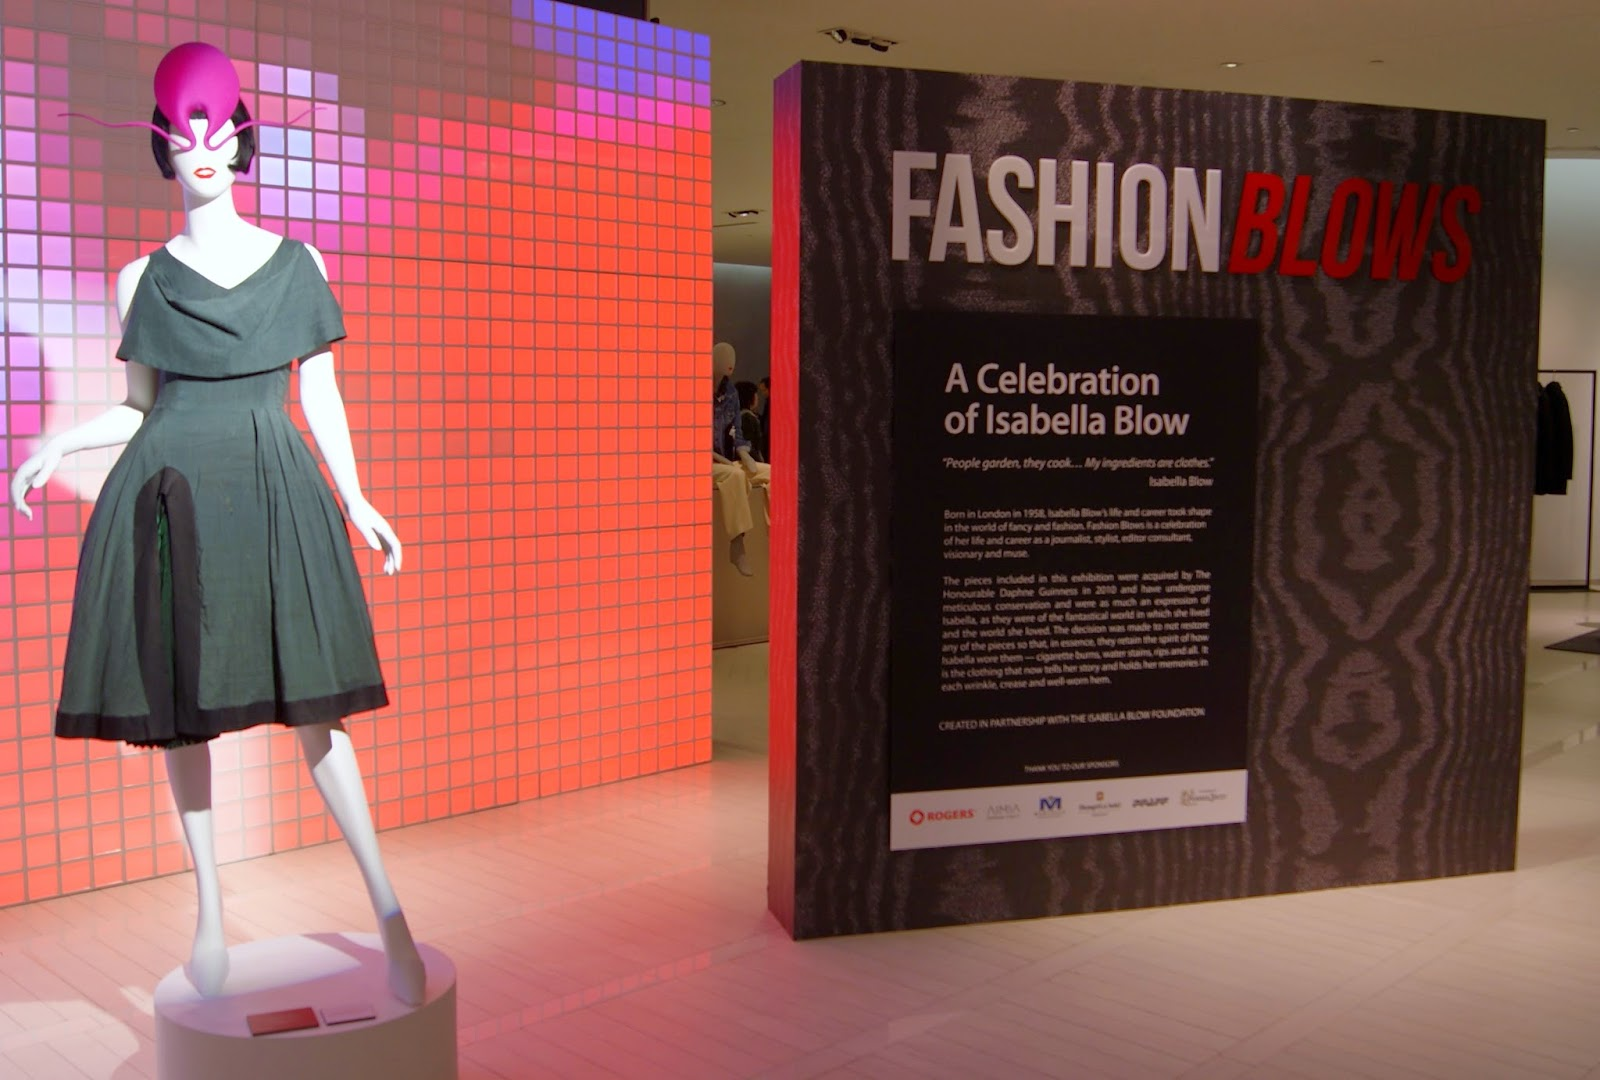 Fashion Blows Exhibit at Hudson's Bay in Toronto, Isabella, Daupne Guinness, Style, Culture, foundation, aleander mcqueen, philip treacy, suicide,the purple scarf, melanie.ps, ontario, canada